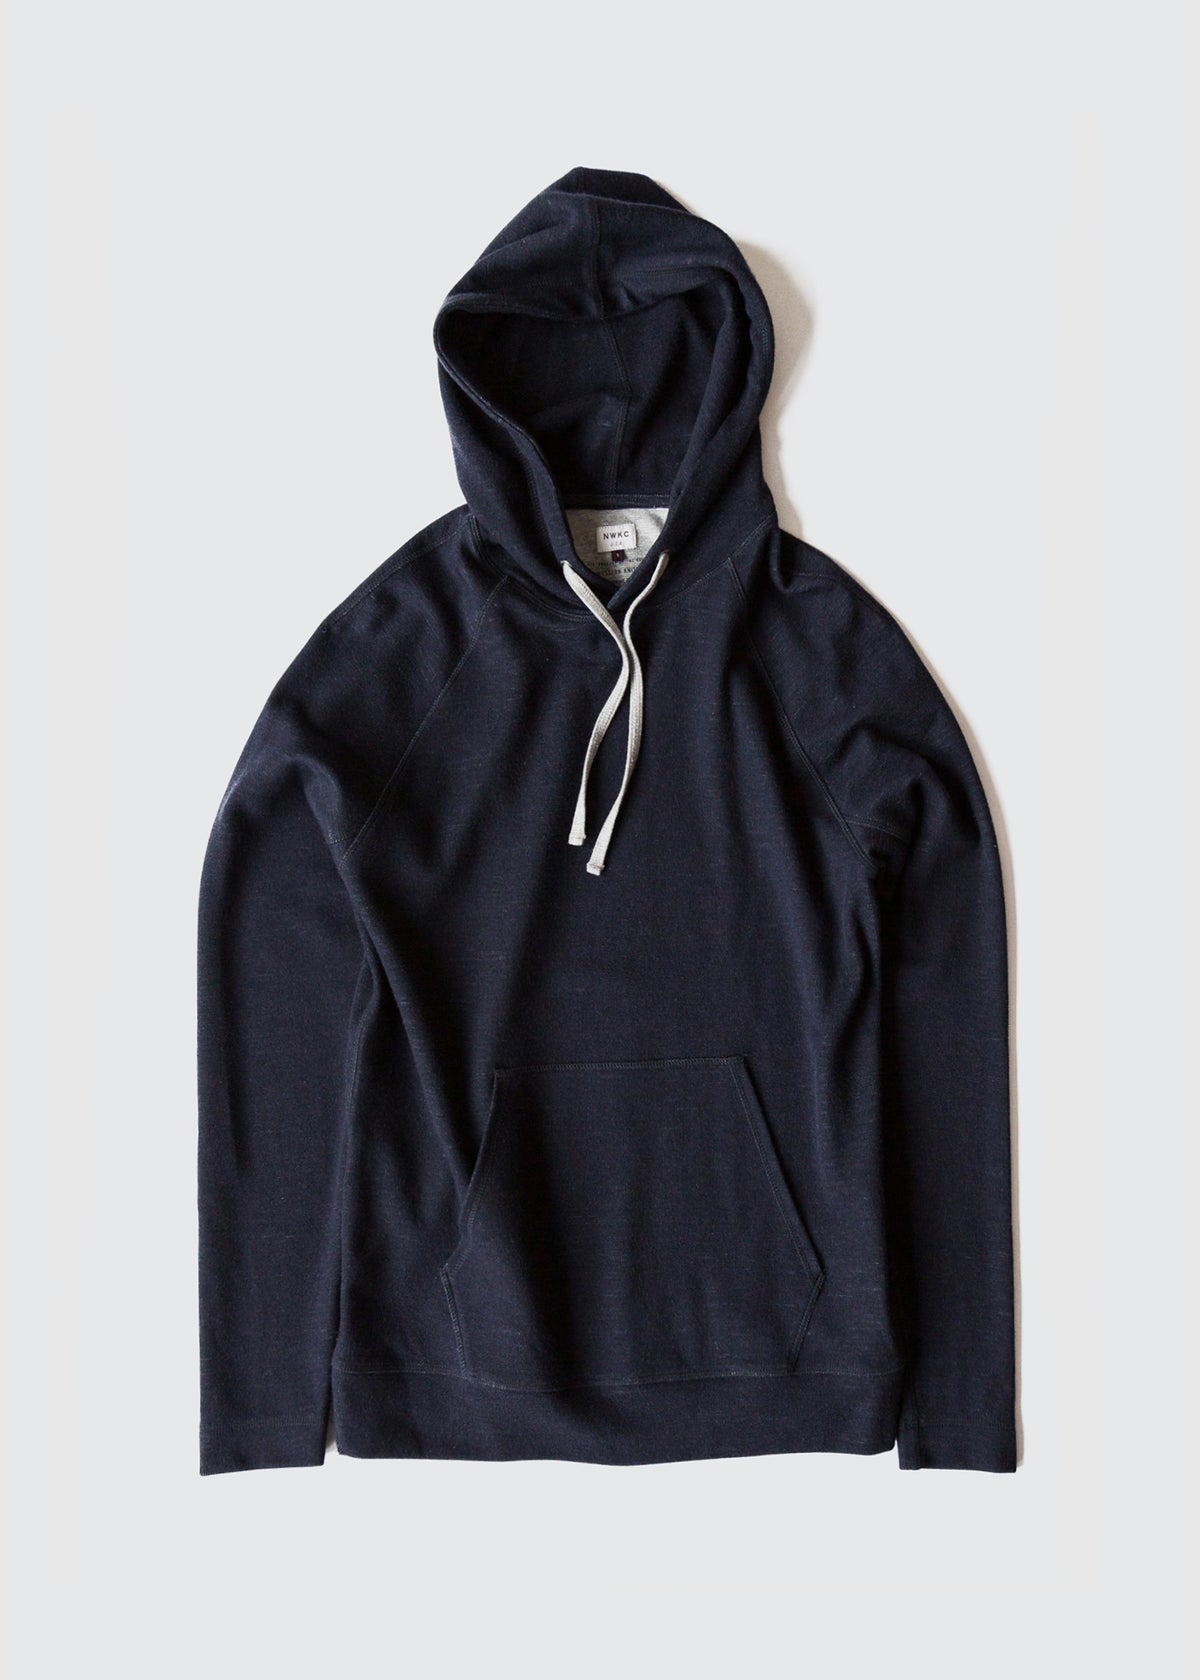 003 - PULLOVER - NAVY - Wilson & Willy's - MPLS Neighbor Goods